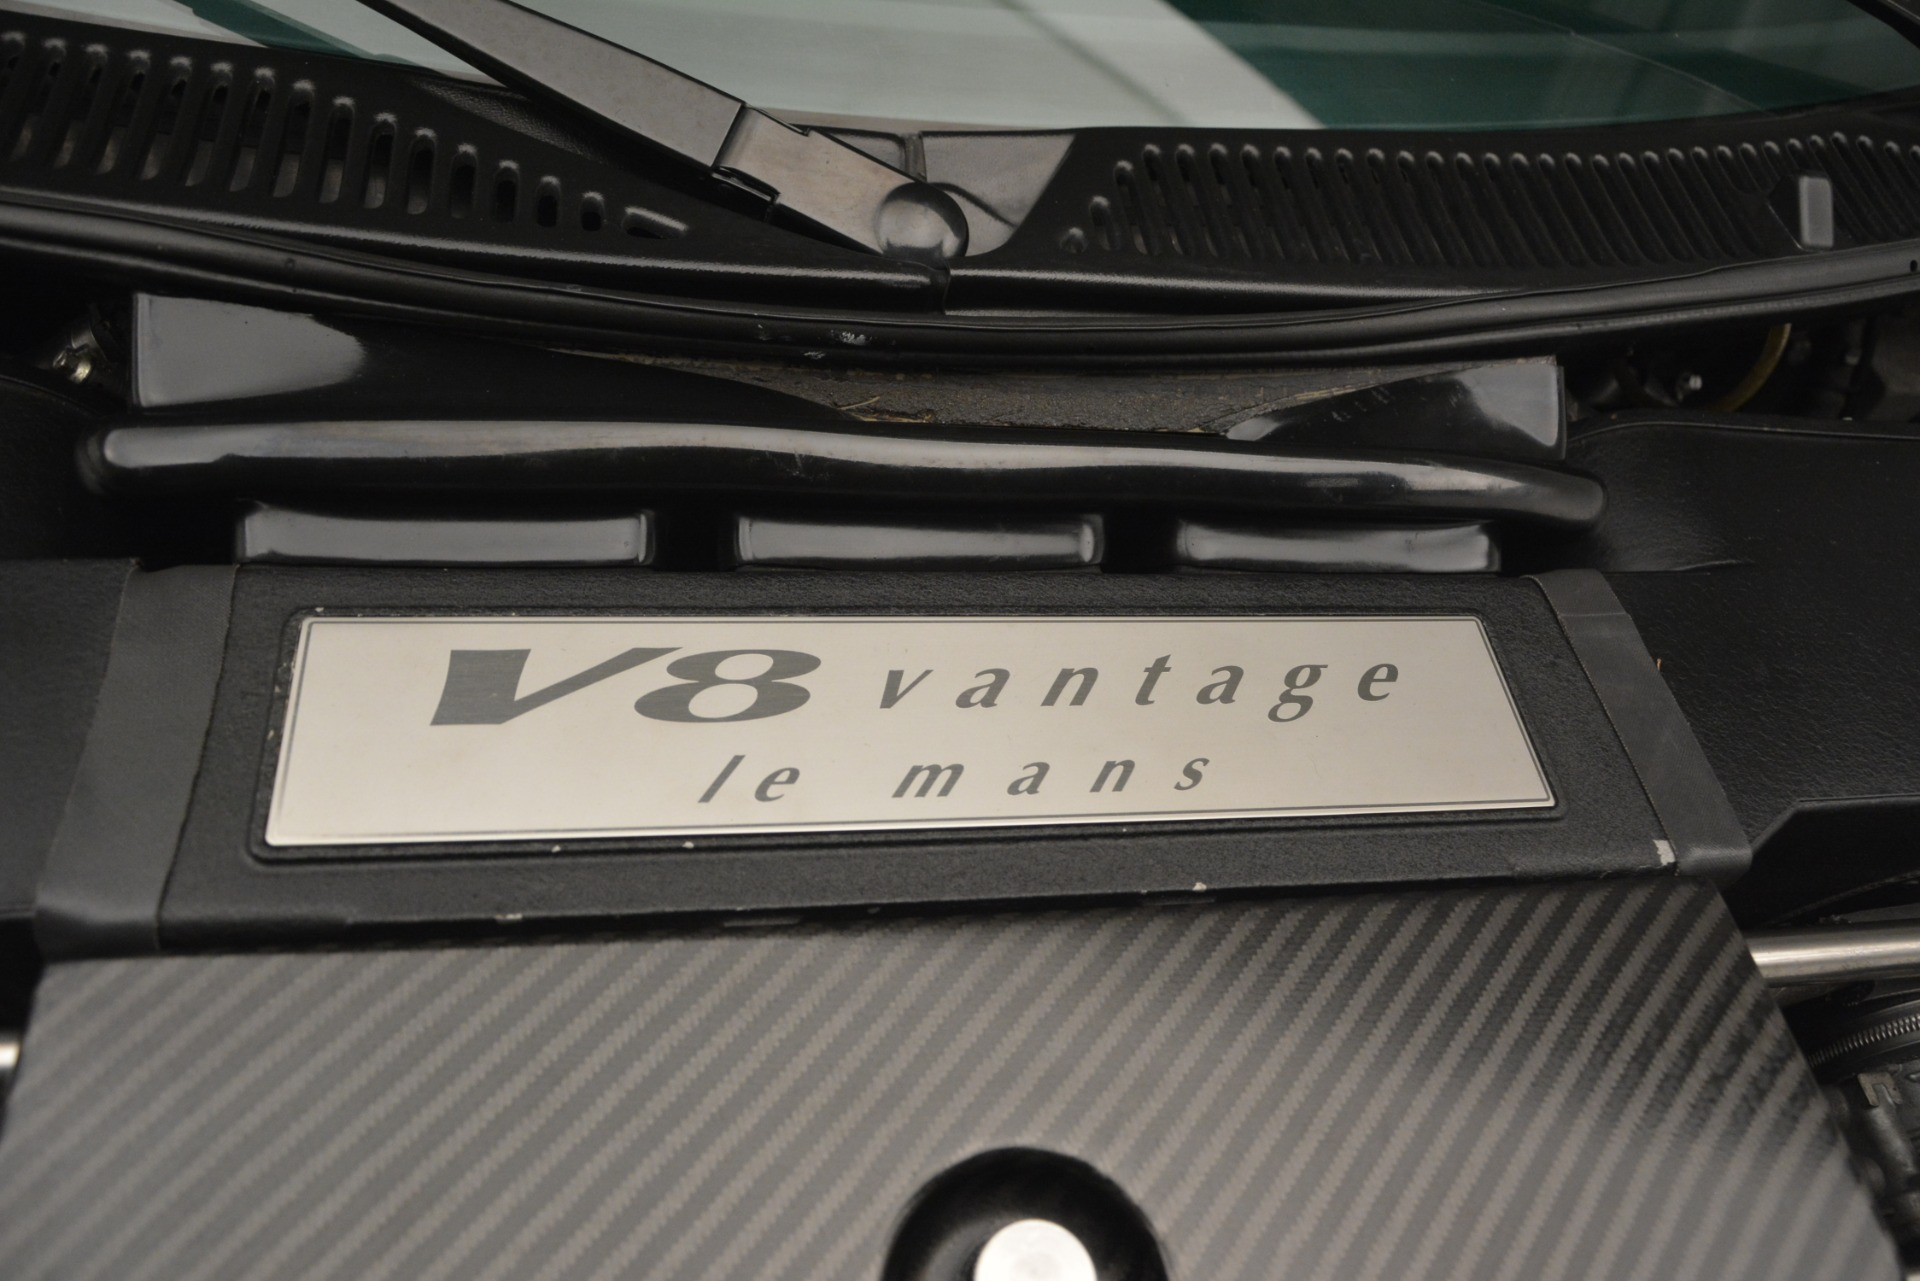 Used 1999 Aston Martin V8 Vantage Le Mans V600 Coupe For Sale In Greenwich, CT 2789_p33